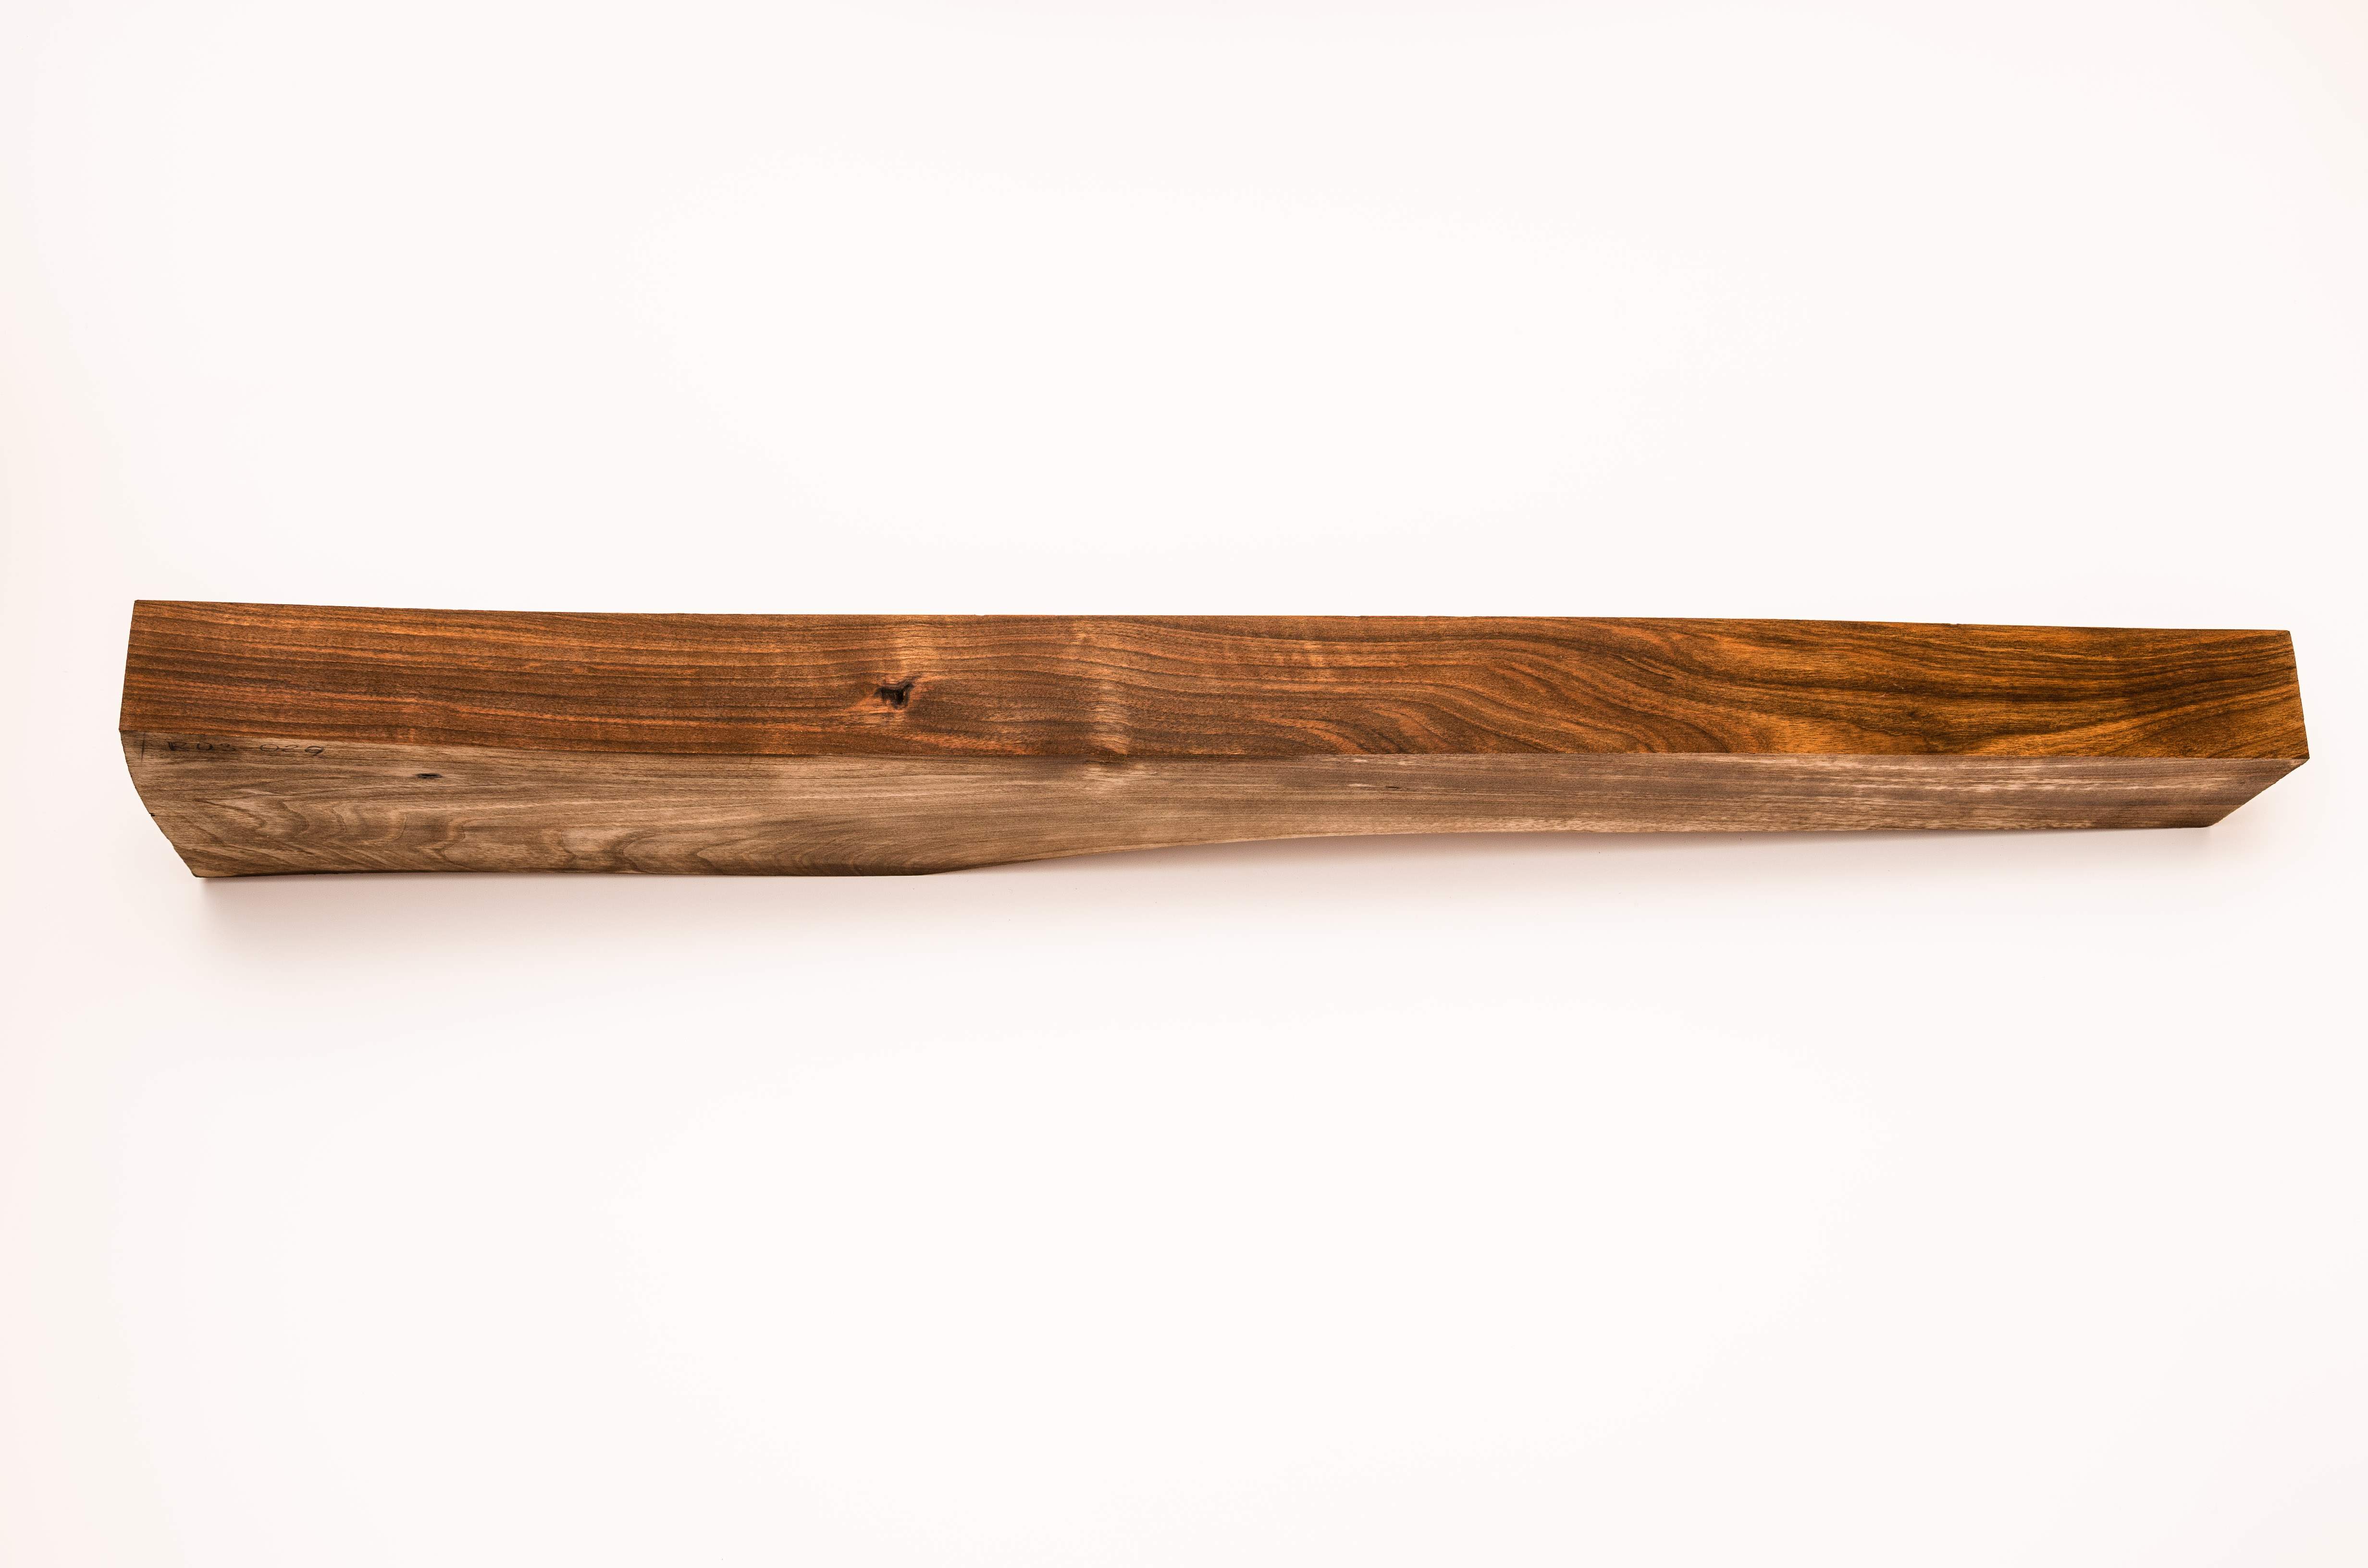 walnut_stock_blanks_for_guns_and_rifles-1070